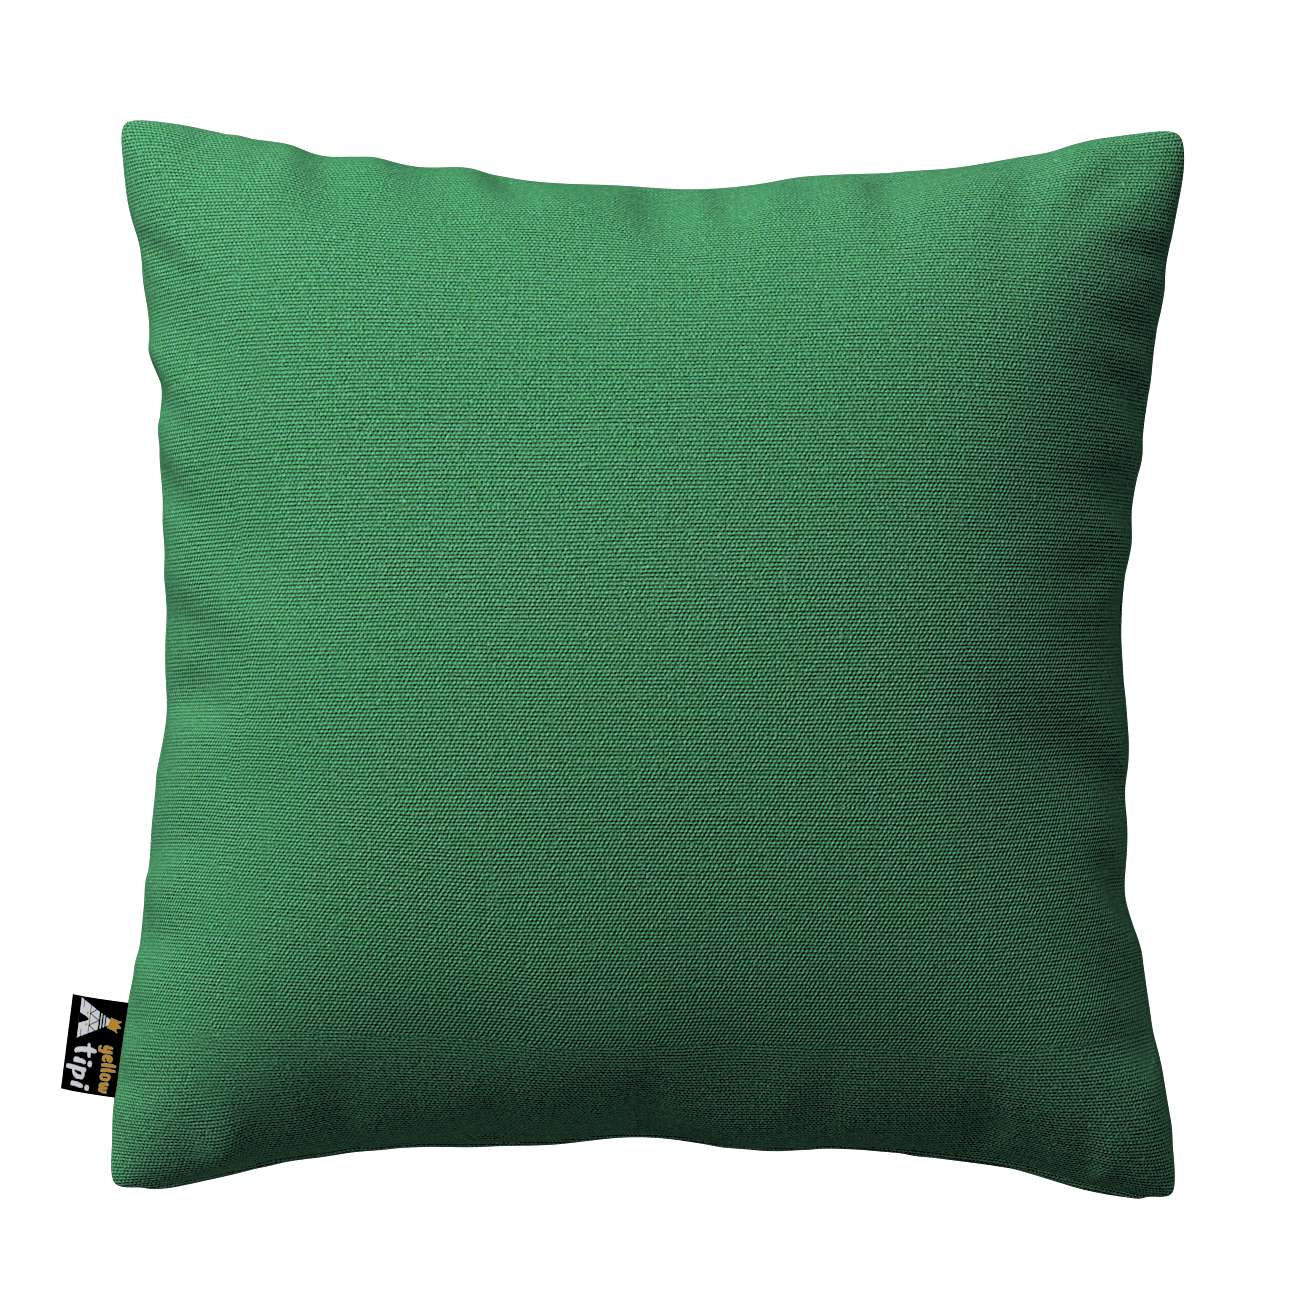 Milly cushion cover in collection Happiness, fabric: 133-18